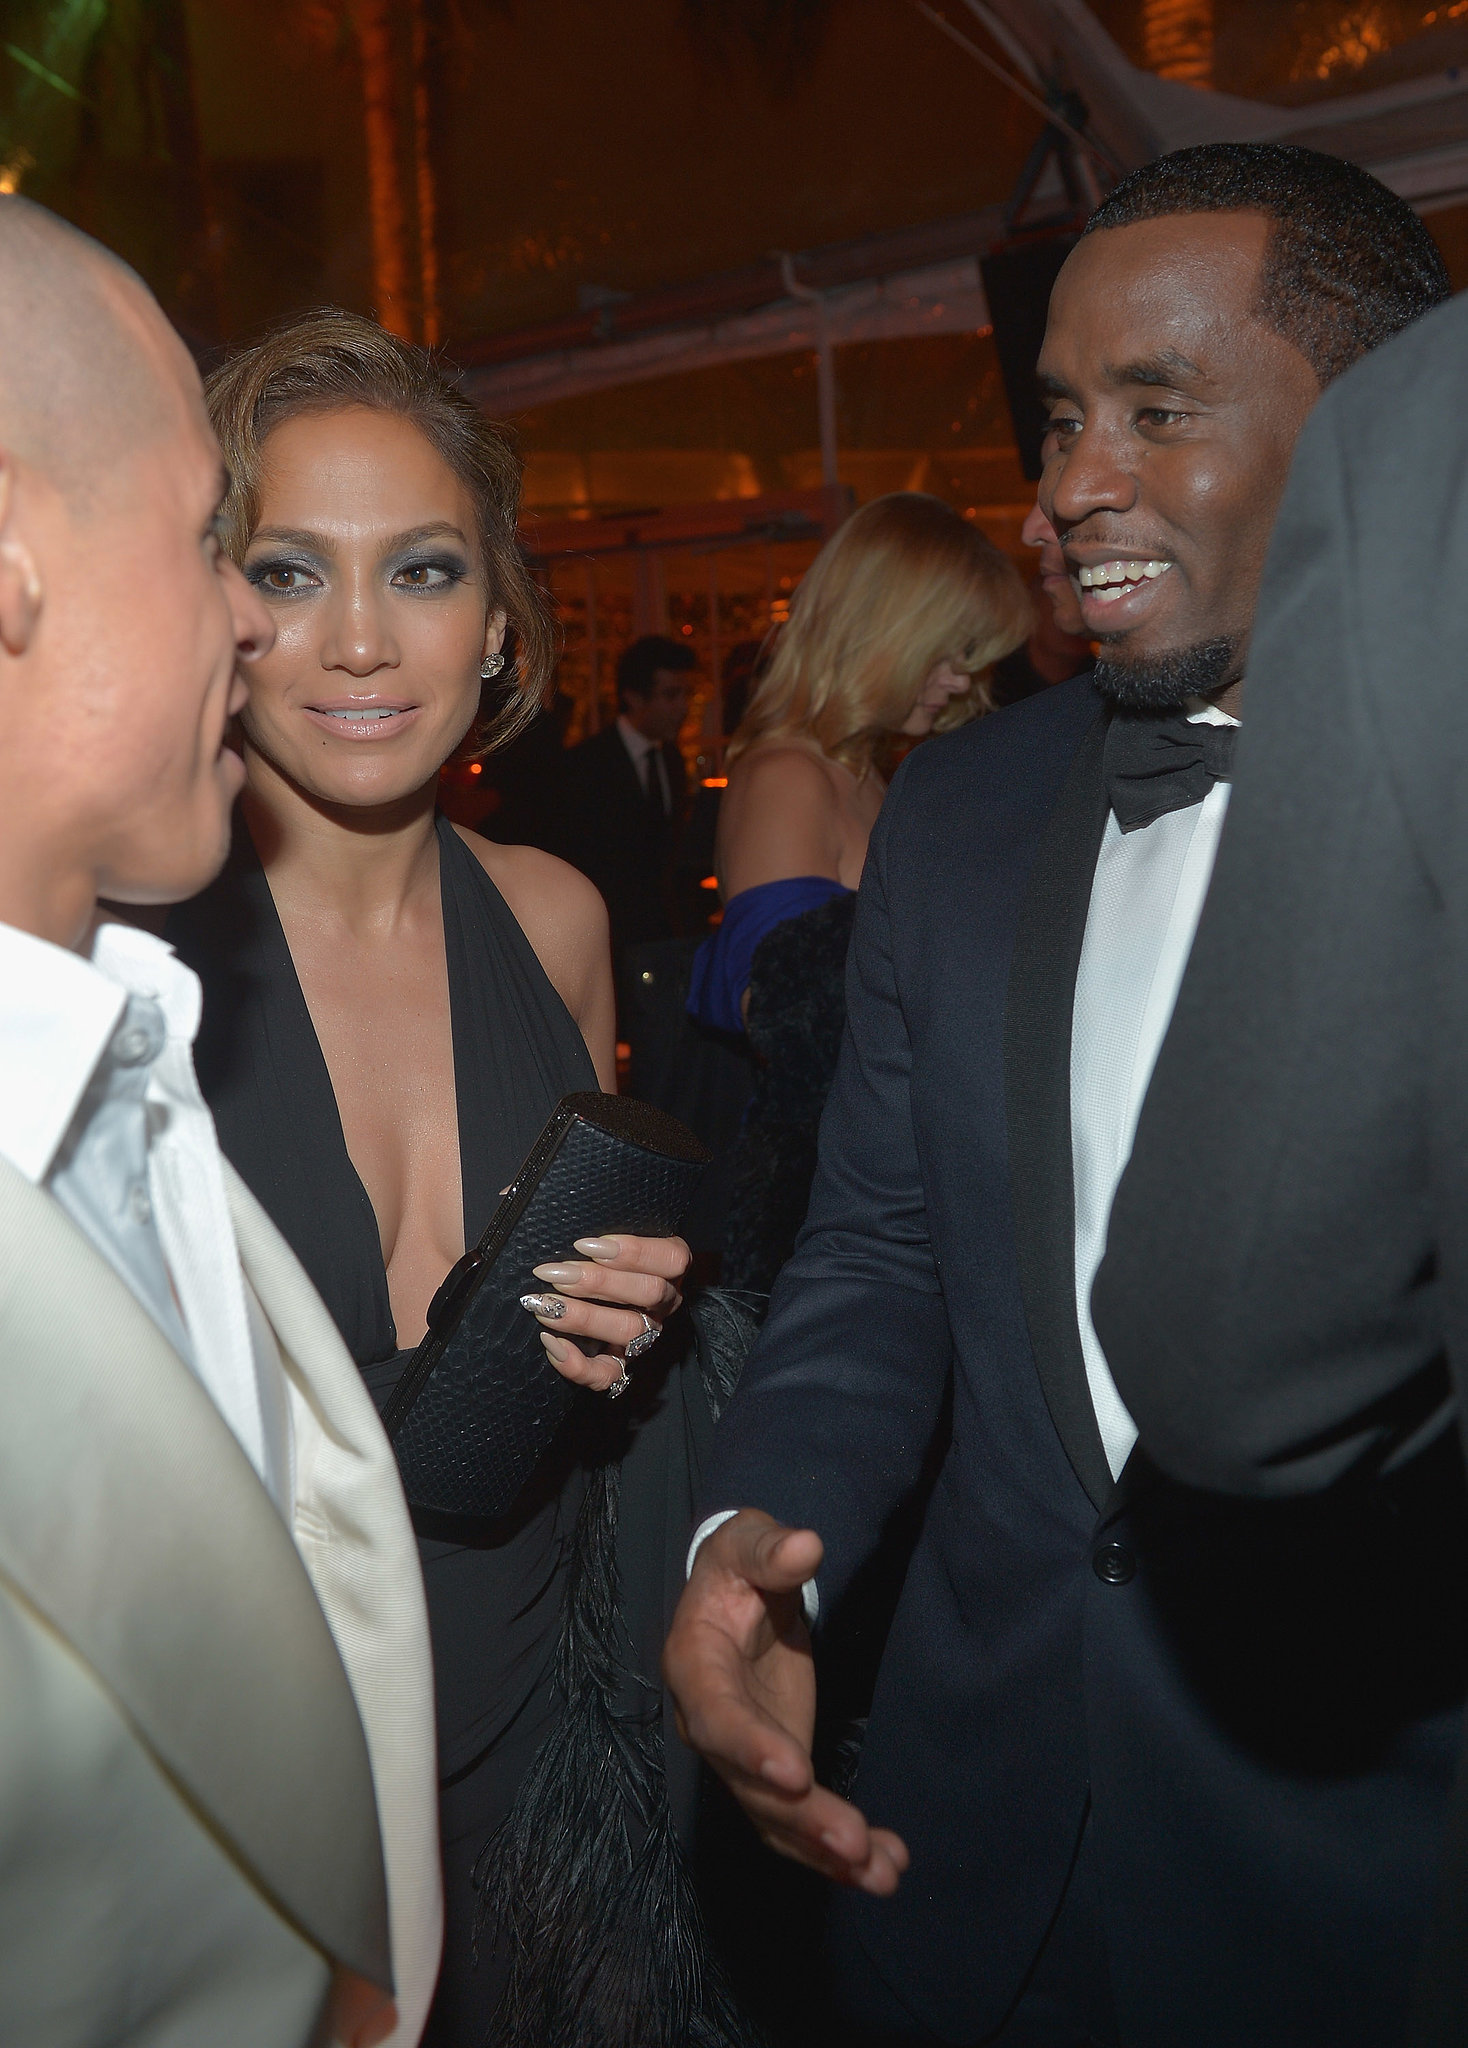 Jennifer Lopez introduced ex-boyfriend Diddy to her current beau, Casper Smart, at a Golden Globes afterparty.